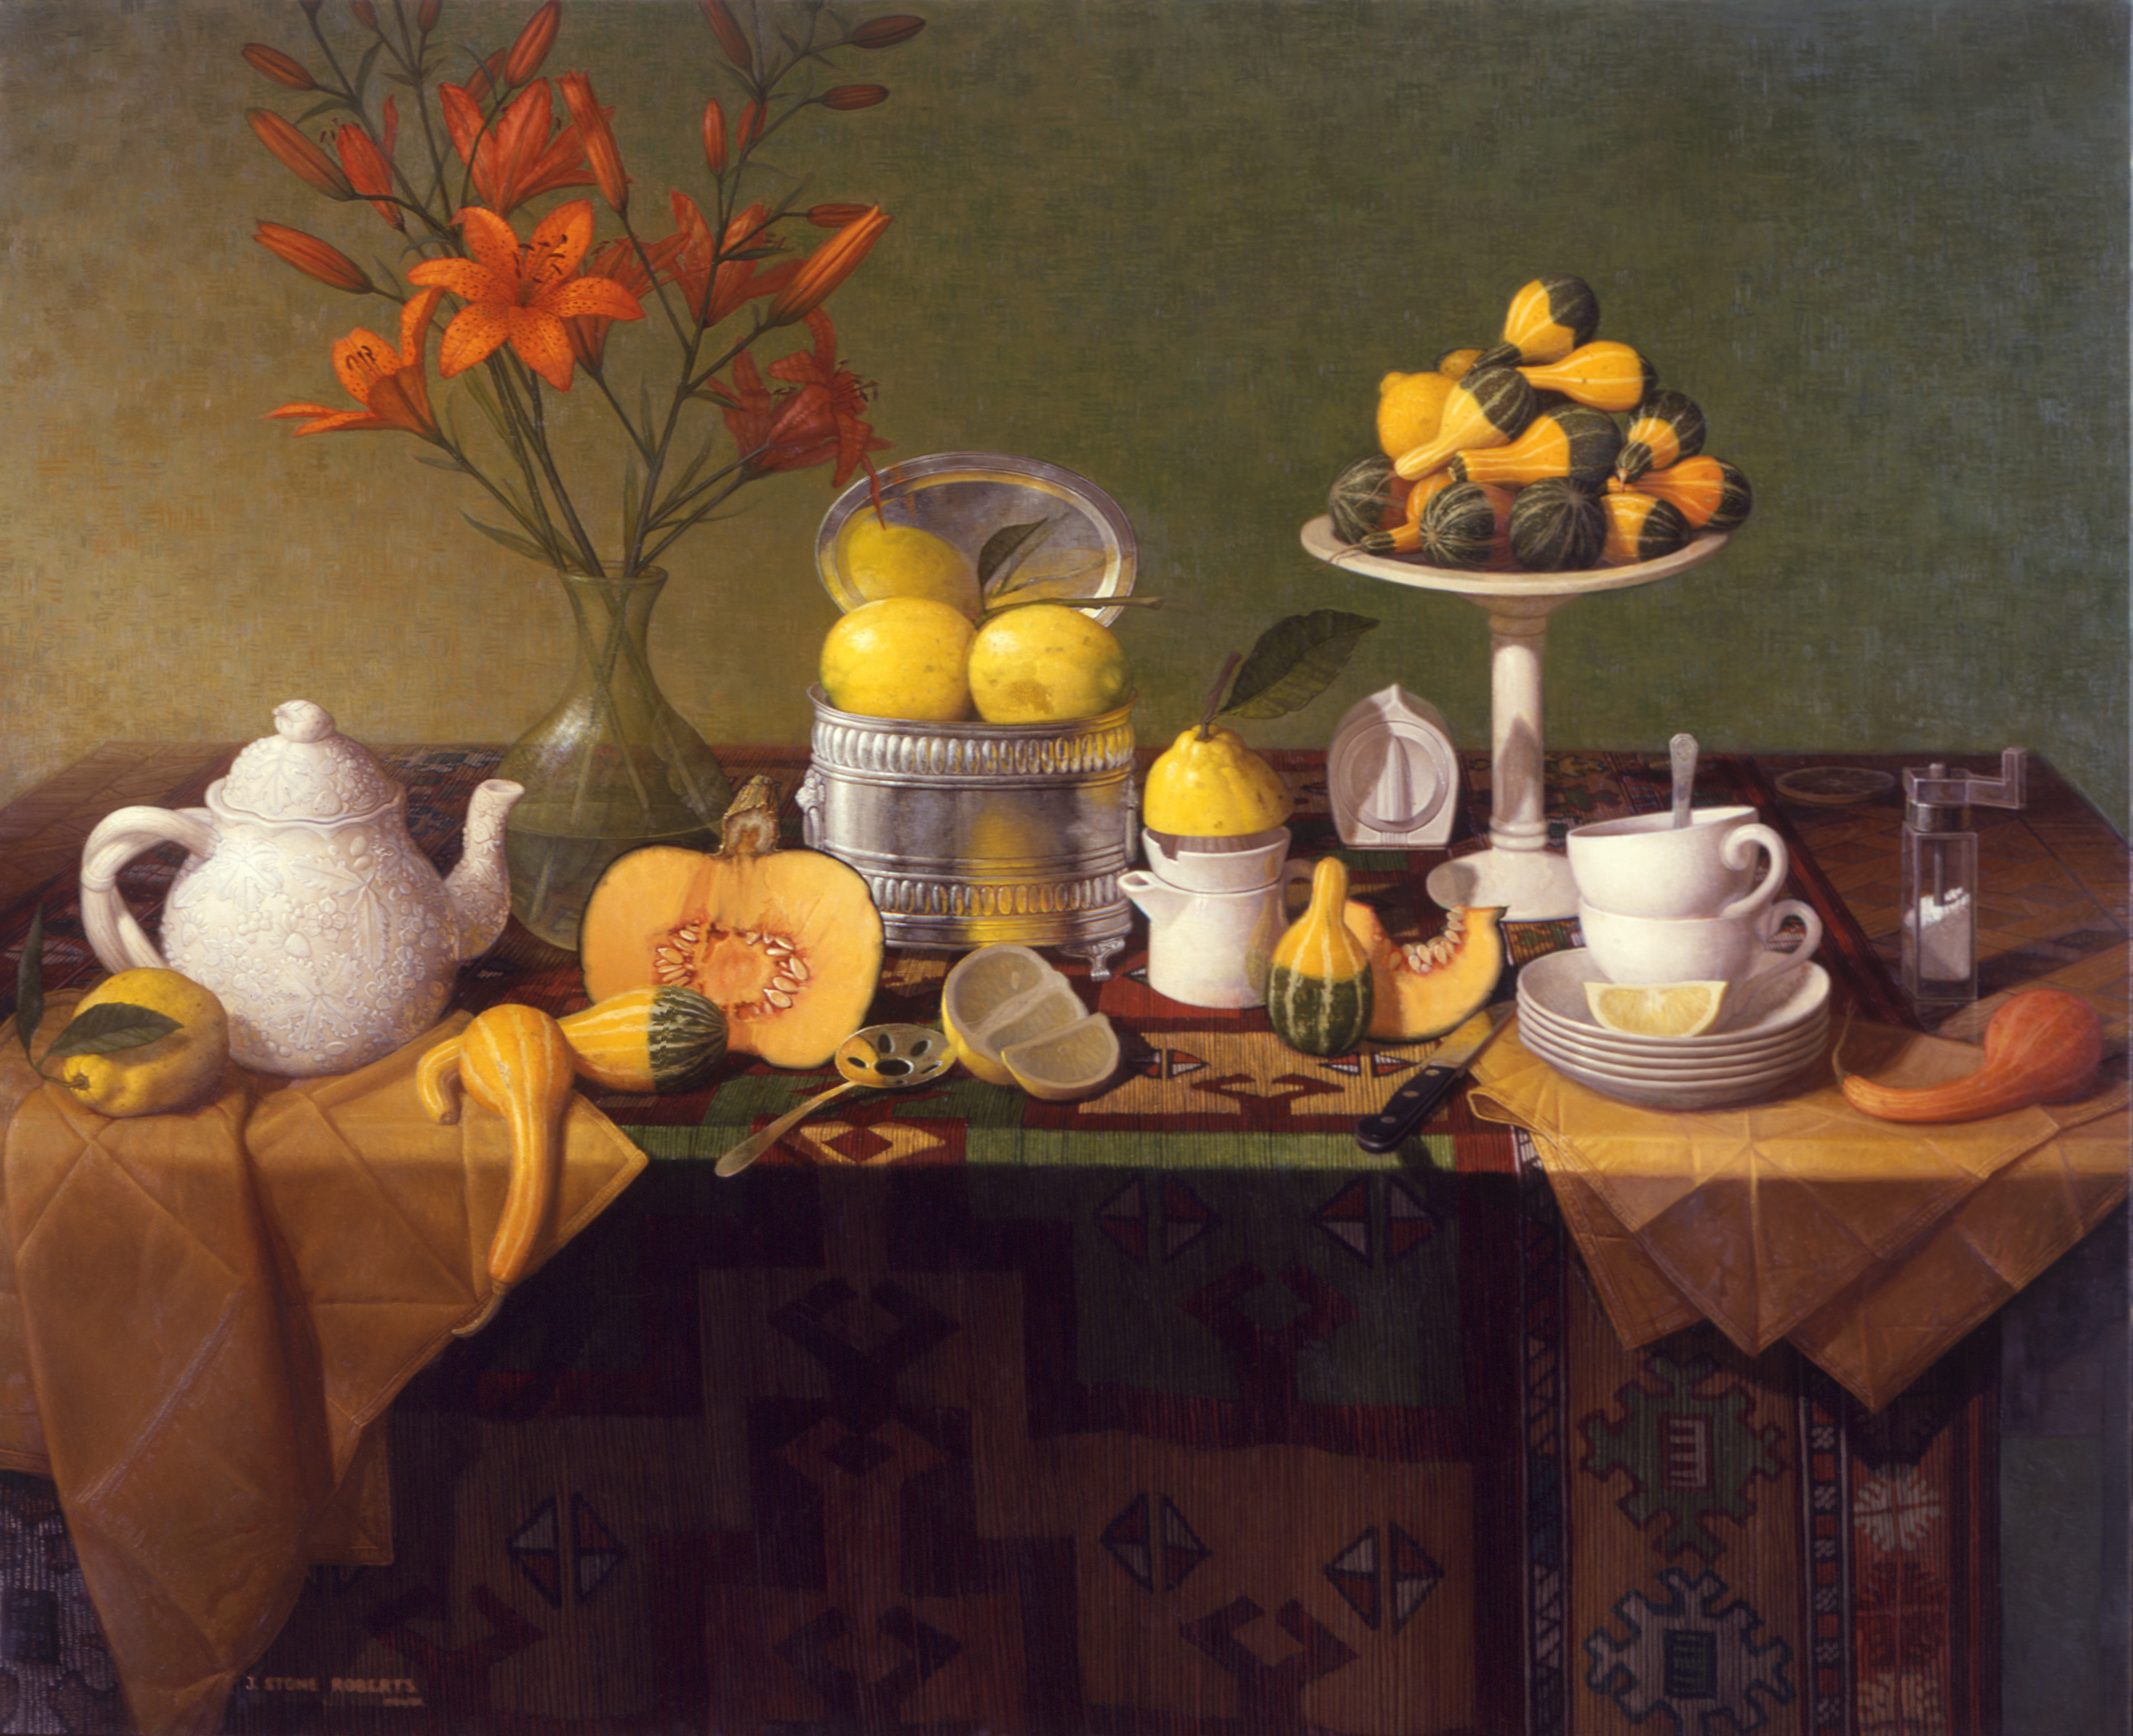 LEMONS, LILIES AND GOURDS (1986/87)